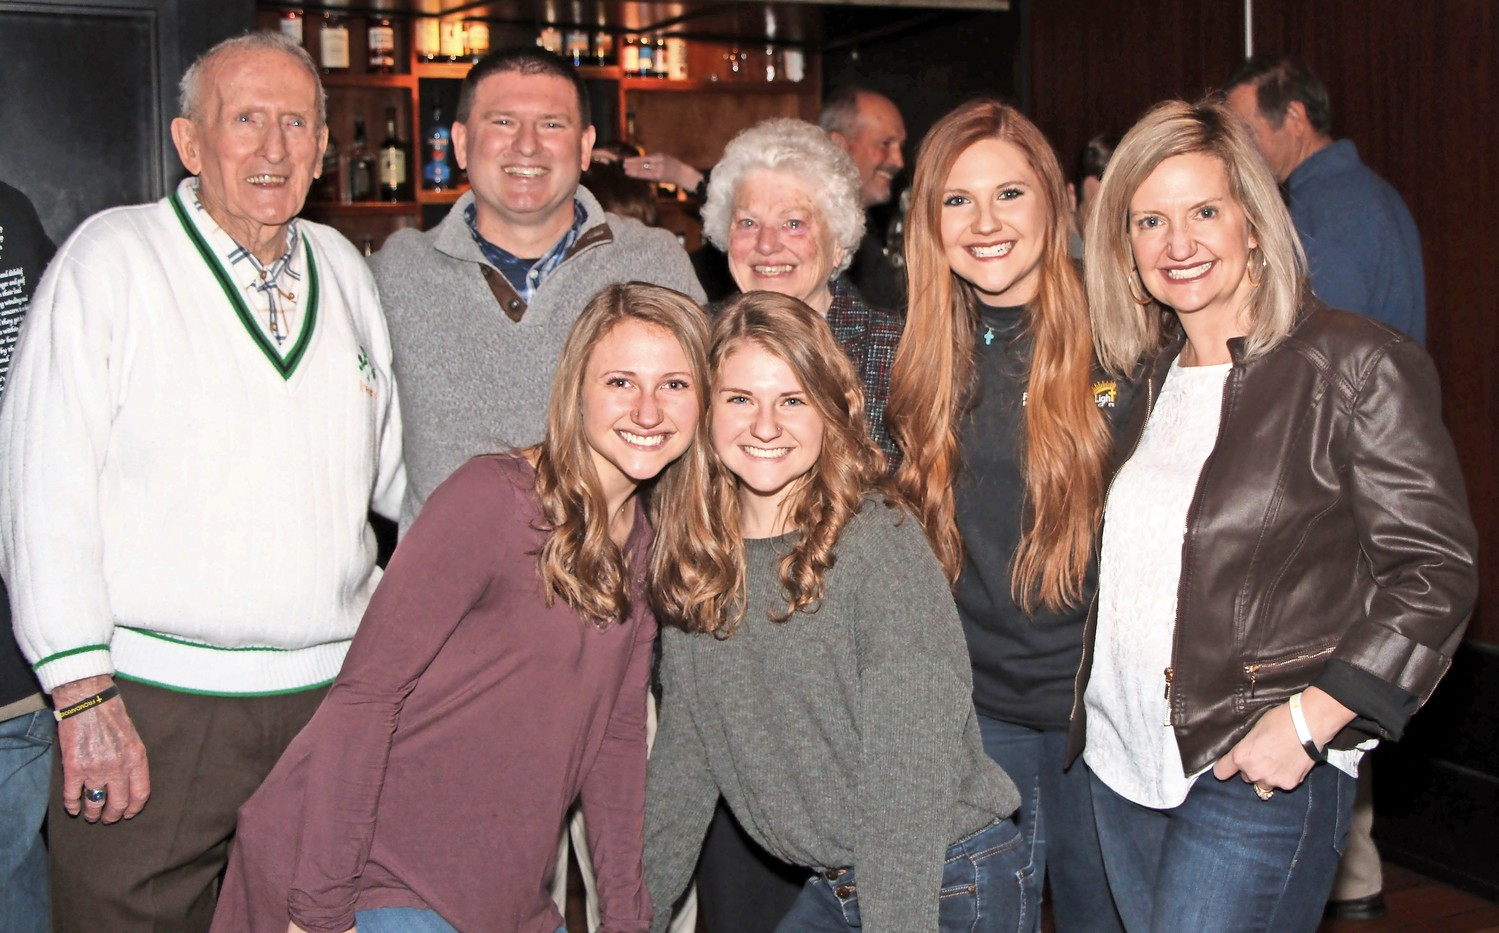 Sean O'Brien, second from the left, was joined by his father Bernie, mother Marilyn, wife Heather and daughters Kailyn, Meghan and Holly.